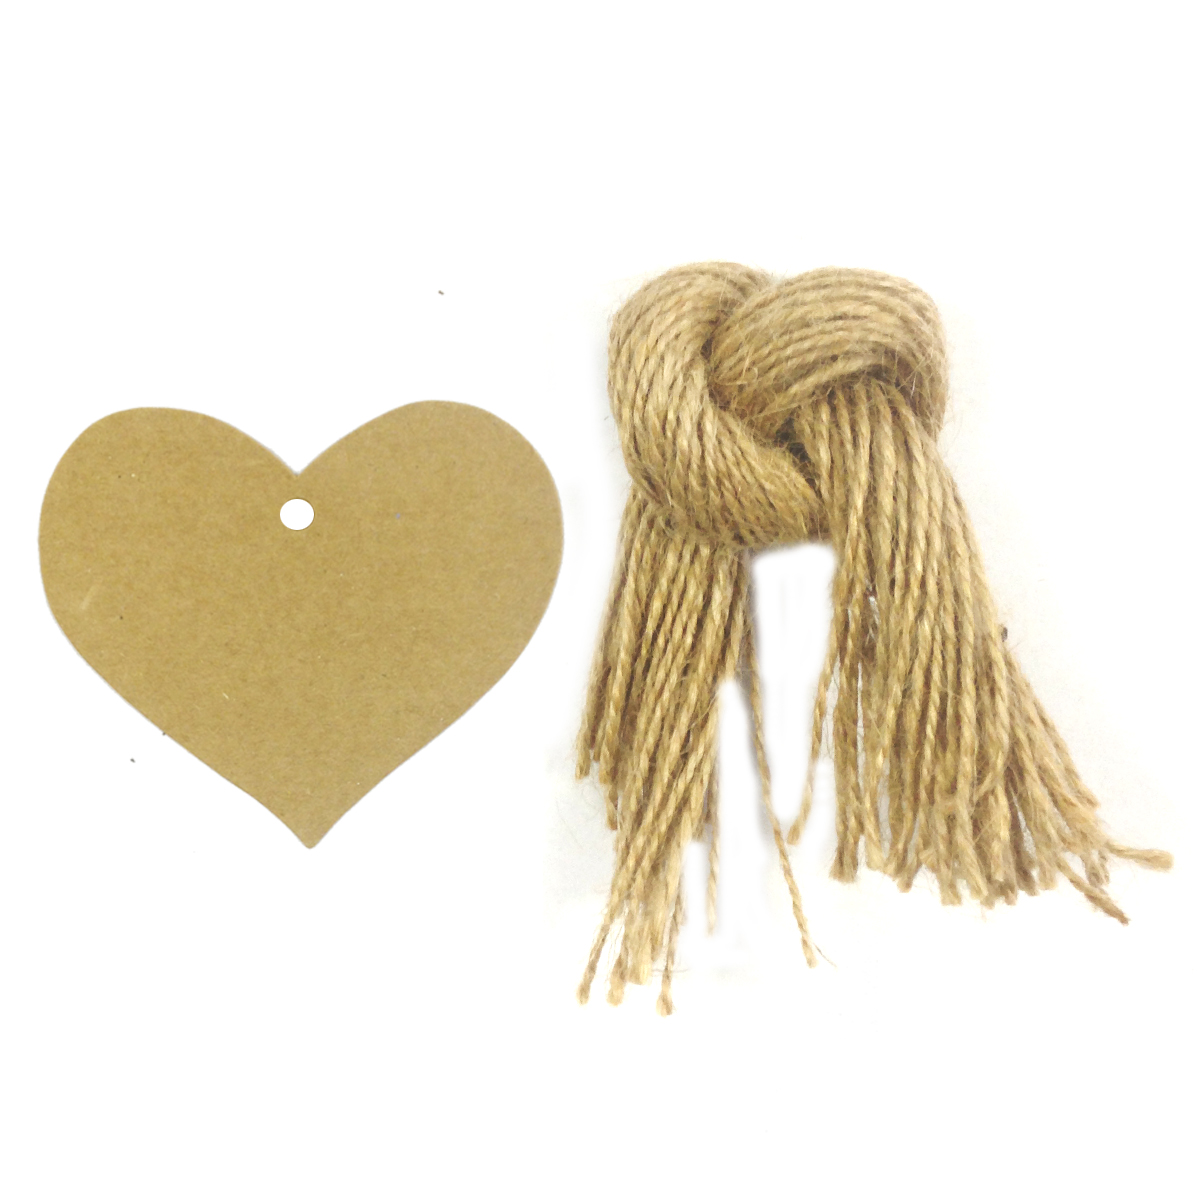 Wrapables® 50 Gift Tags/Kraft Hang Tags with Free Cut Strings for Gifts, Crafts & Price Tags, True Heart